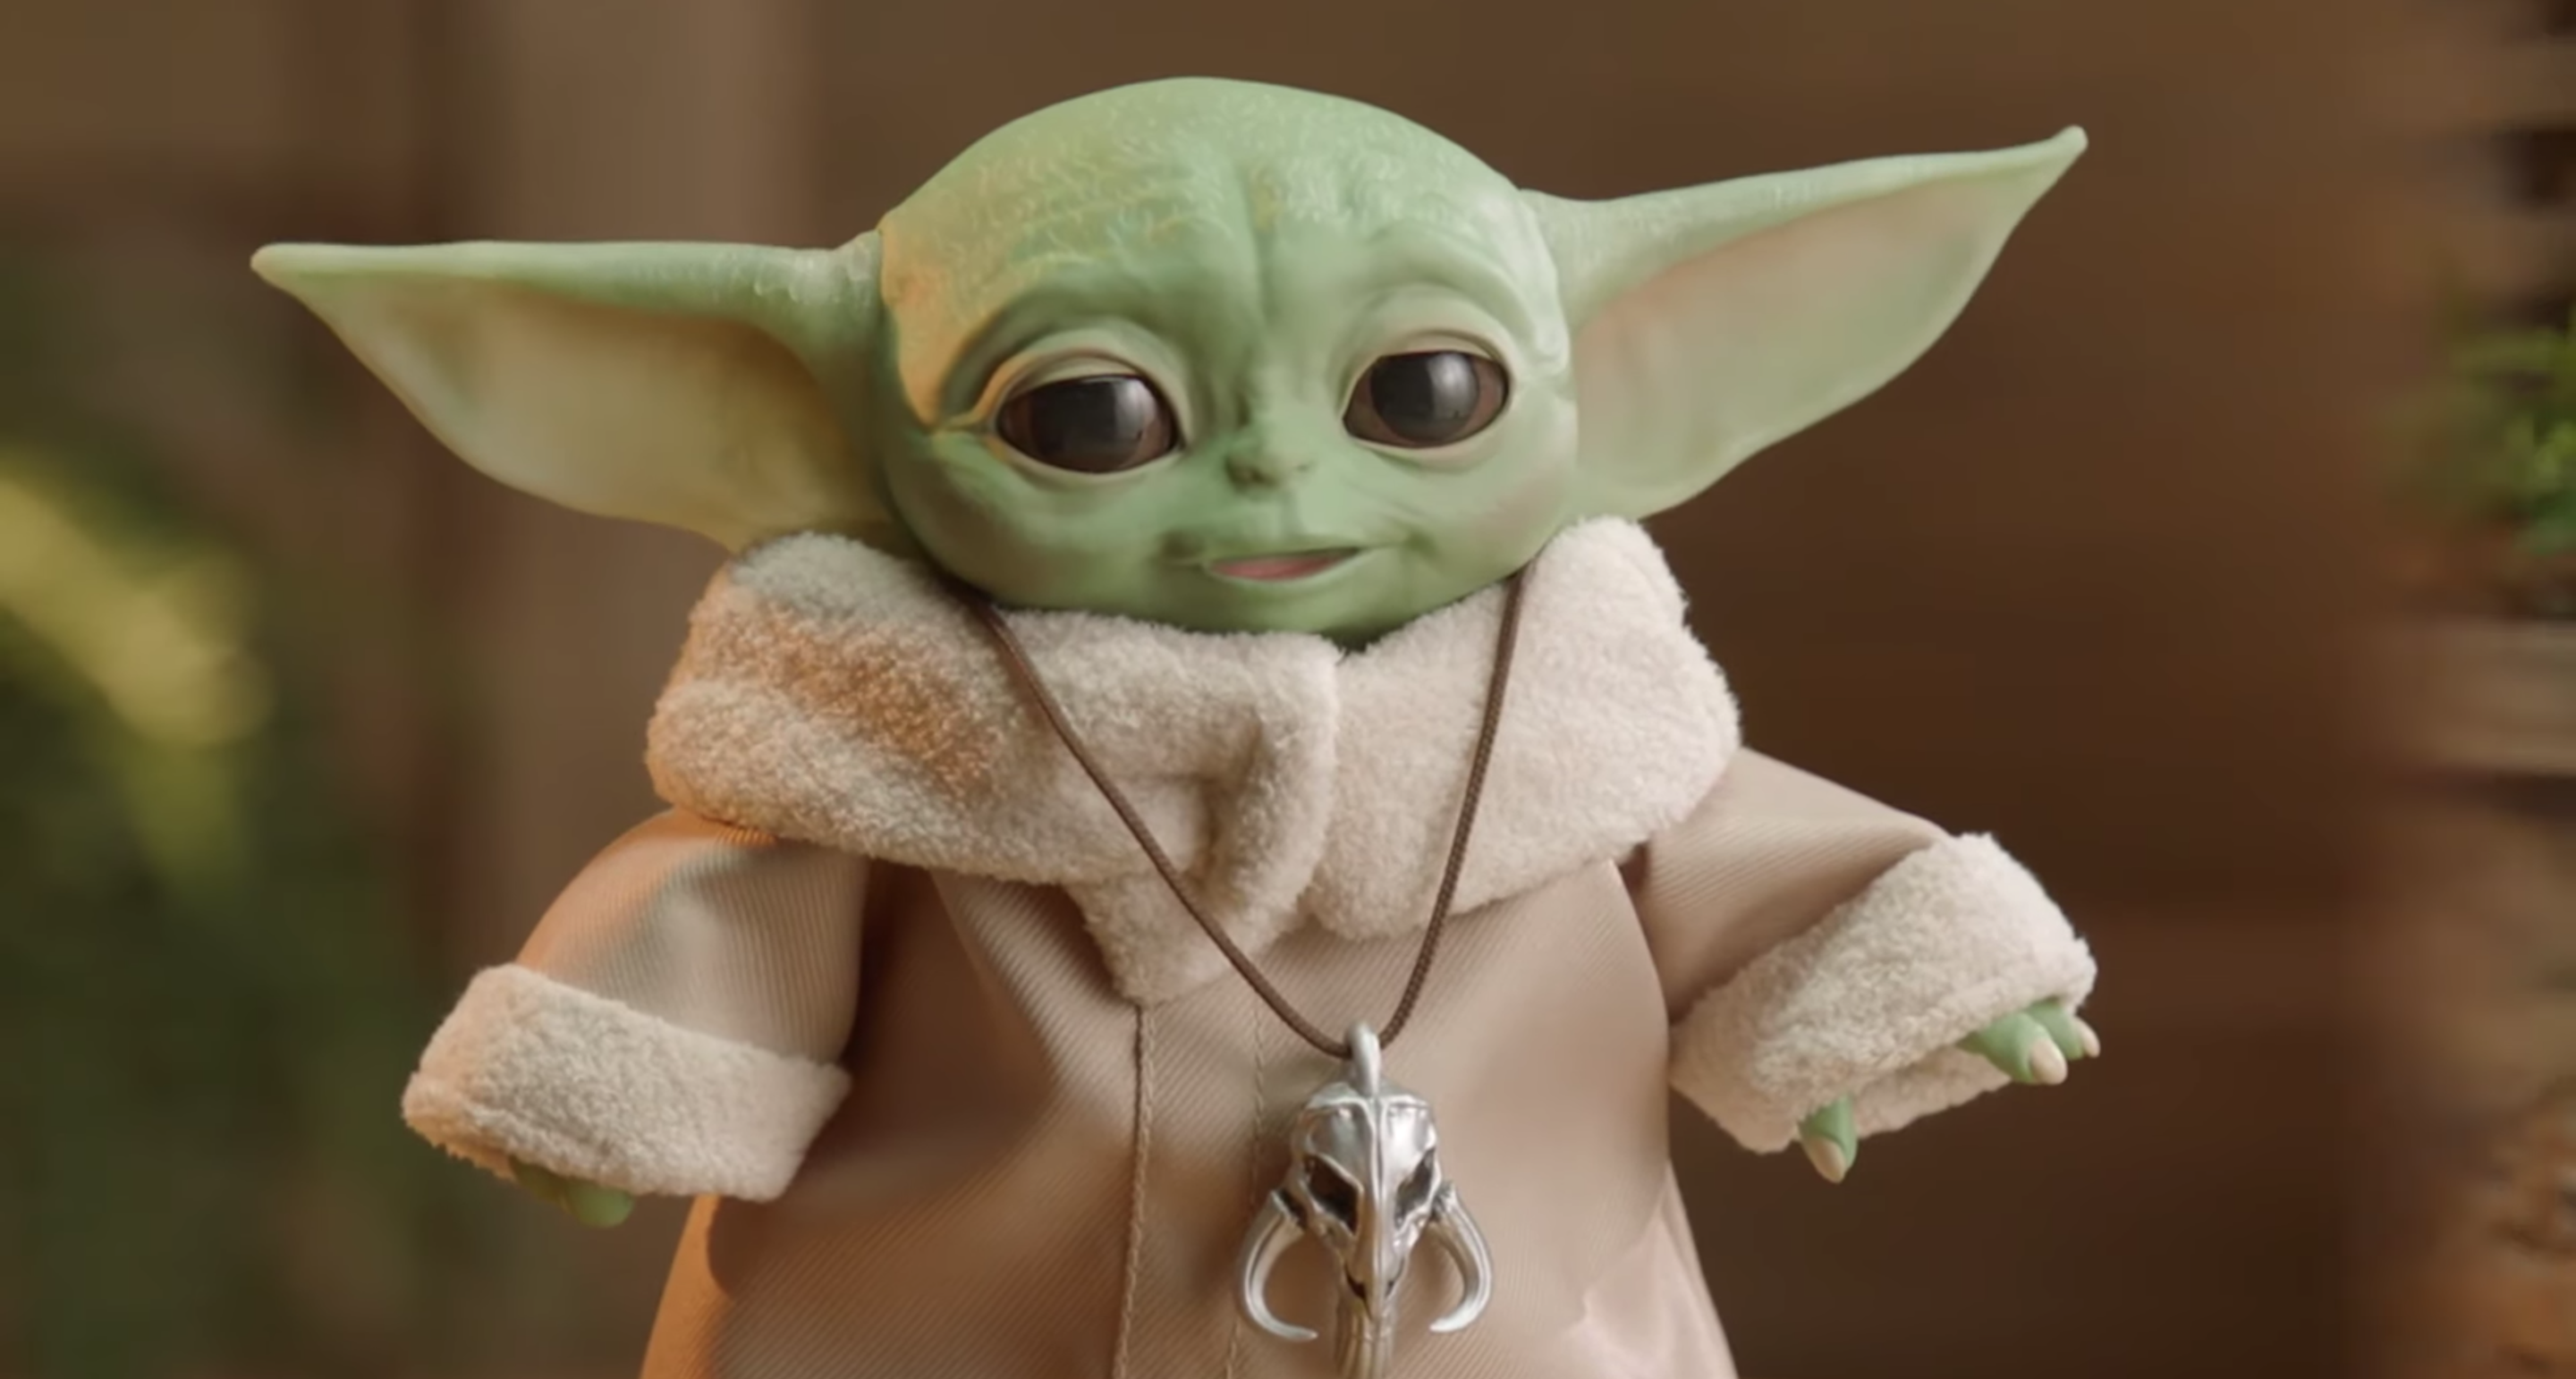 Hasbro released images of their new animatronic Baby Yoda figure, which will be available for $59.99 in Fall 2020.